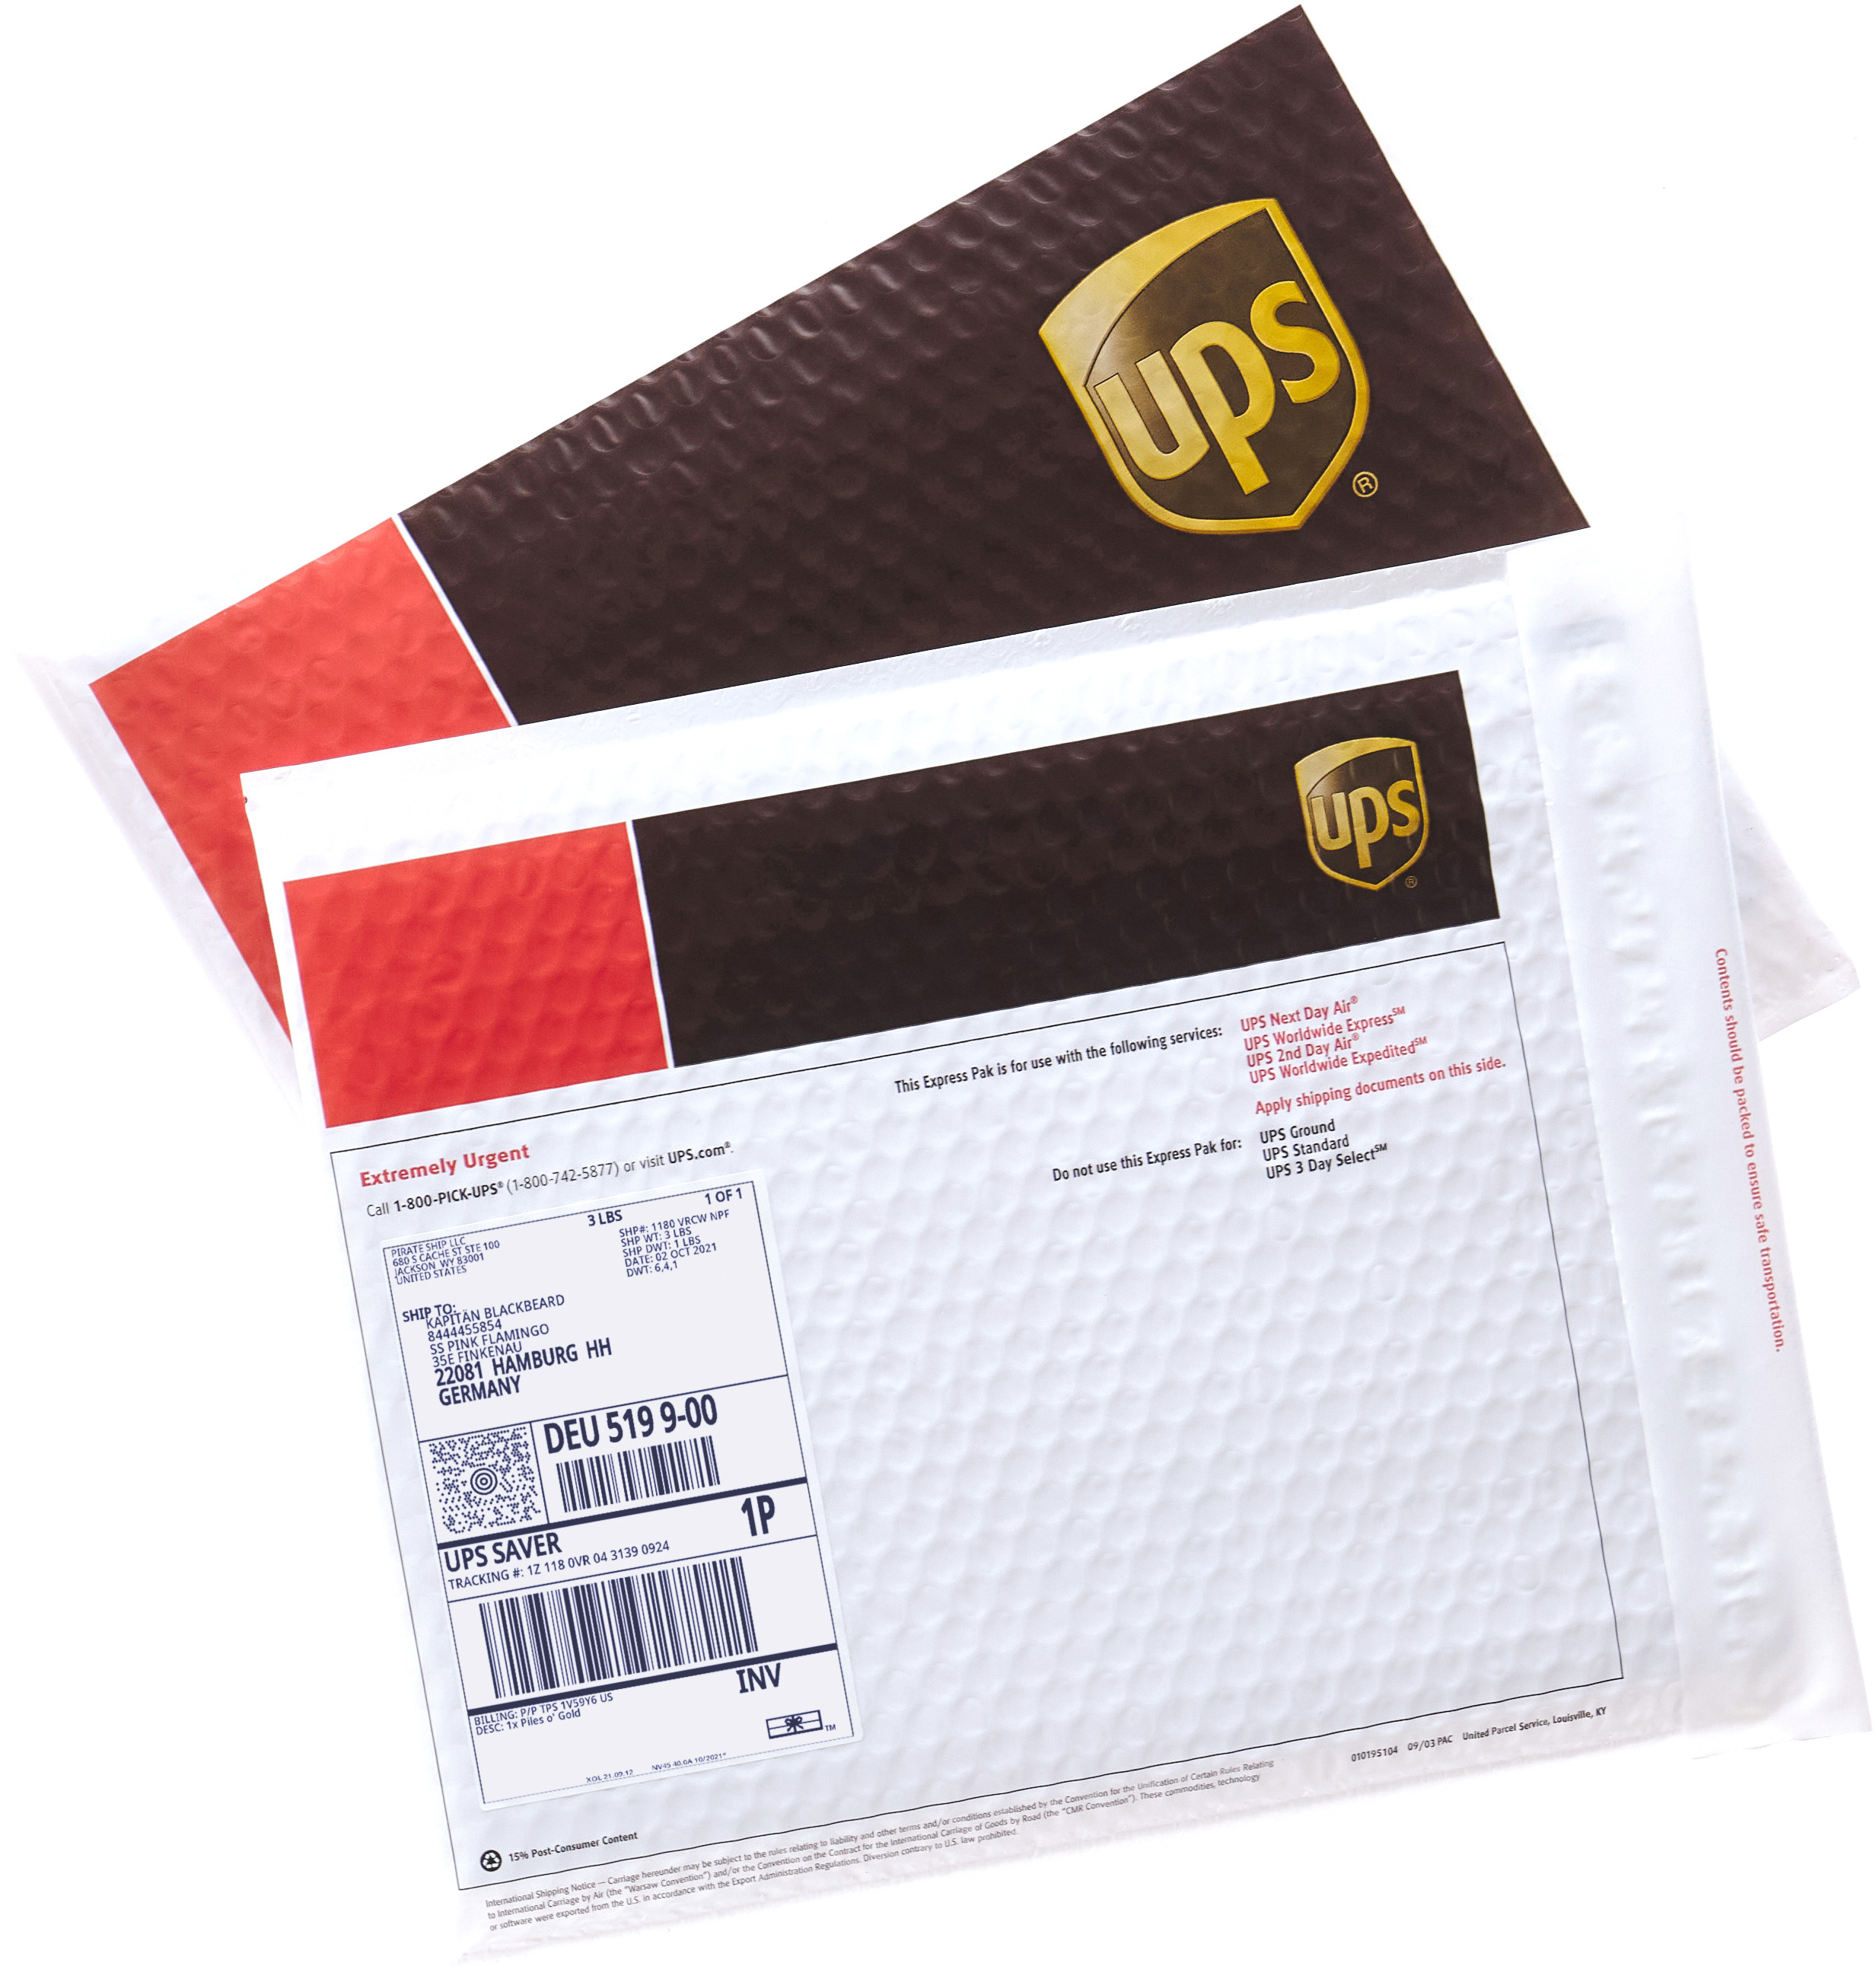 Discounted UPS Worldwide Saver shipping labels on an Express Pak